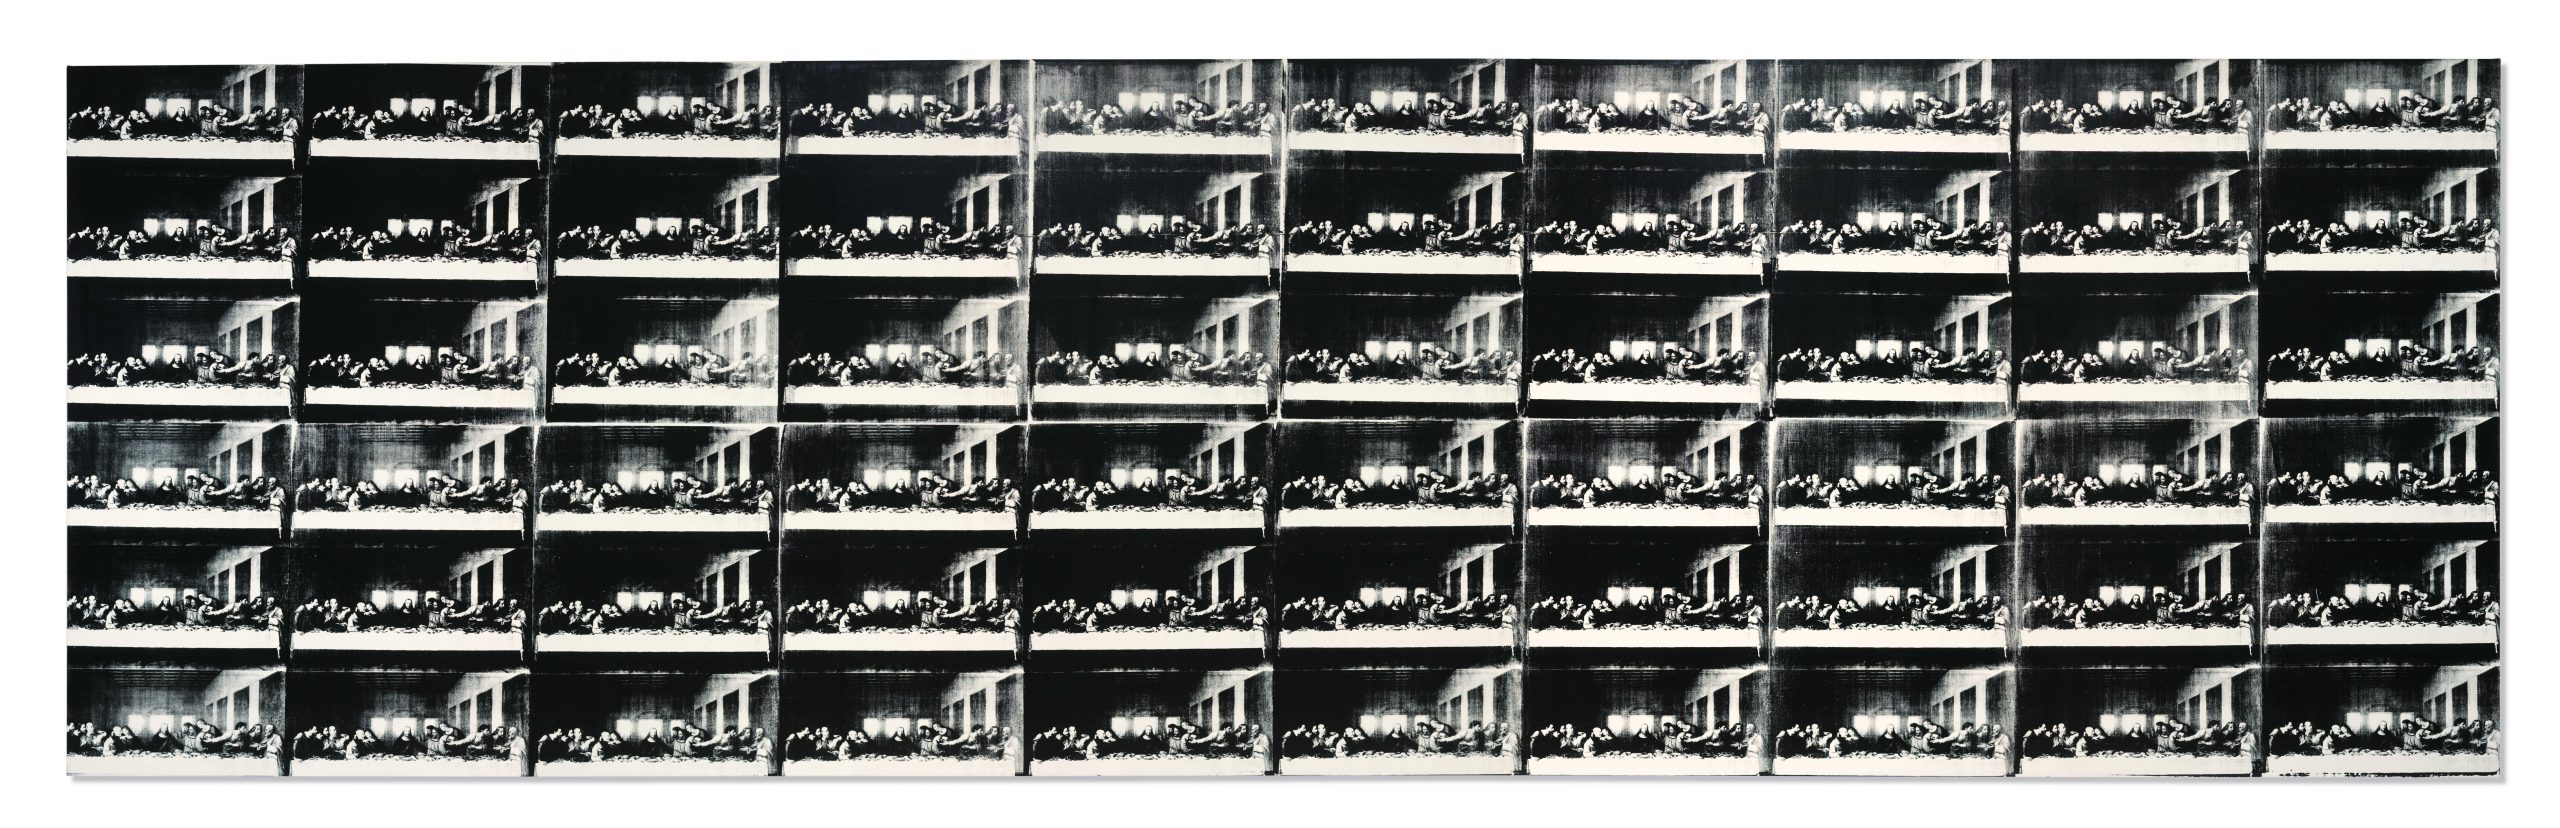 Andy Warhol - Sixty Last Suppers